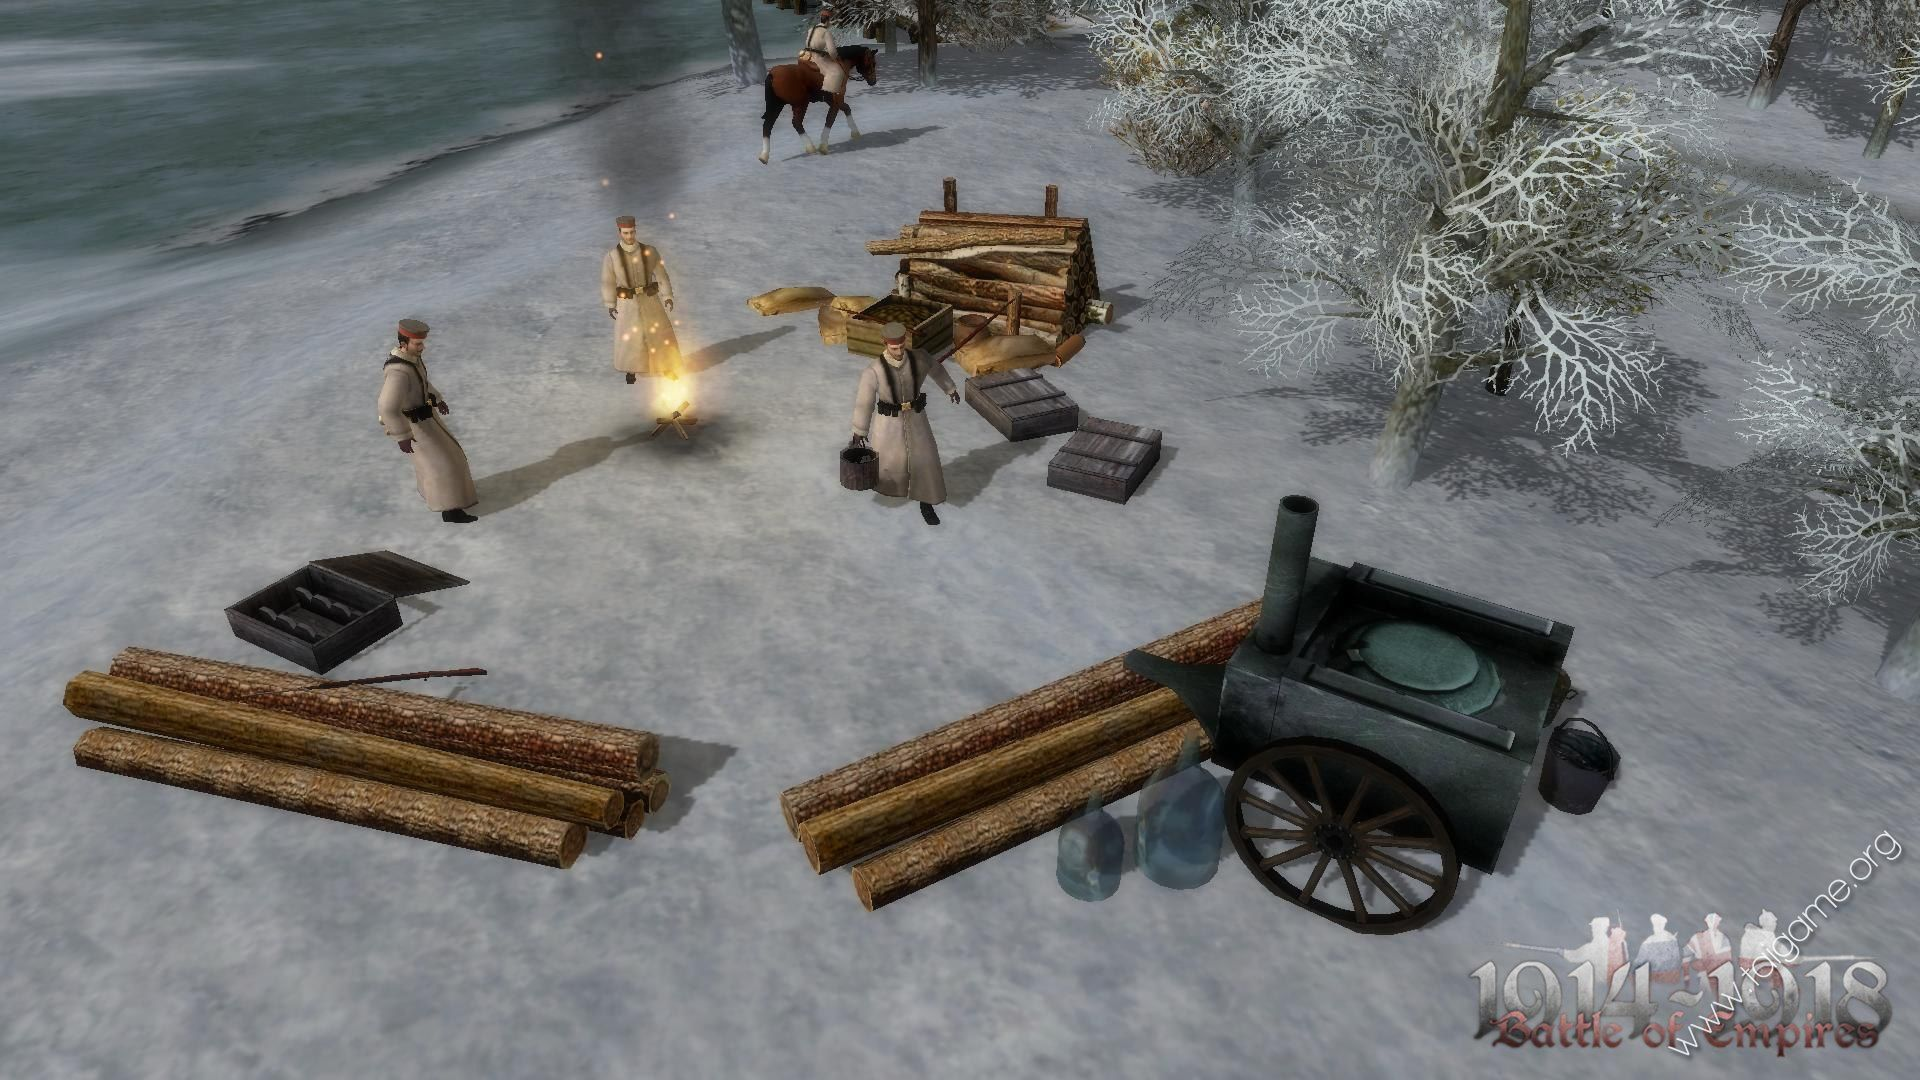 Battle of Empires: 1914-1918 - German campaign 2015 pc game Img-1